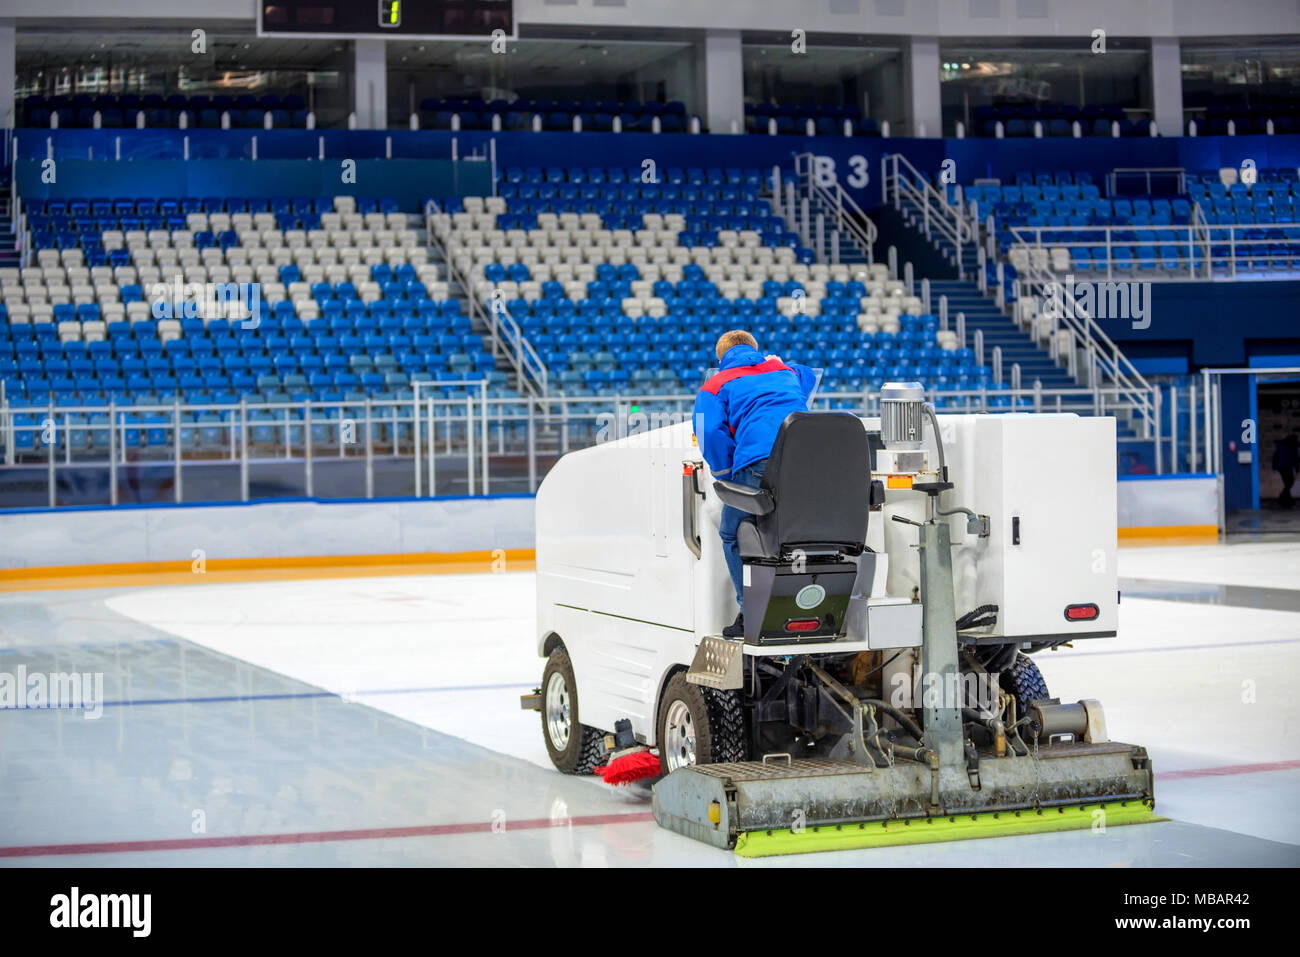 Resurfacing machine cleans ice of hockey rink - Stock Image